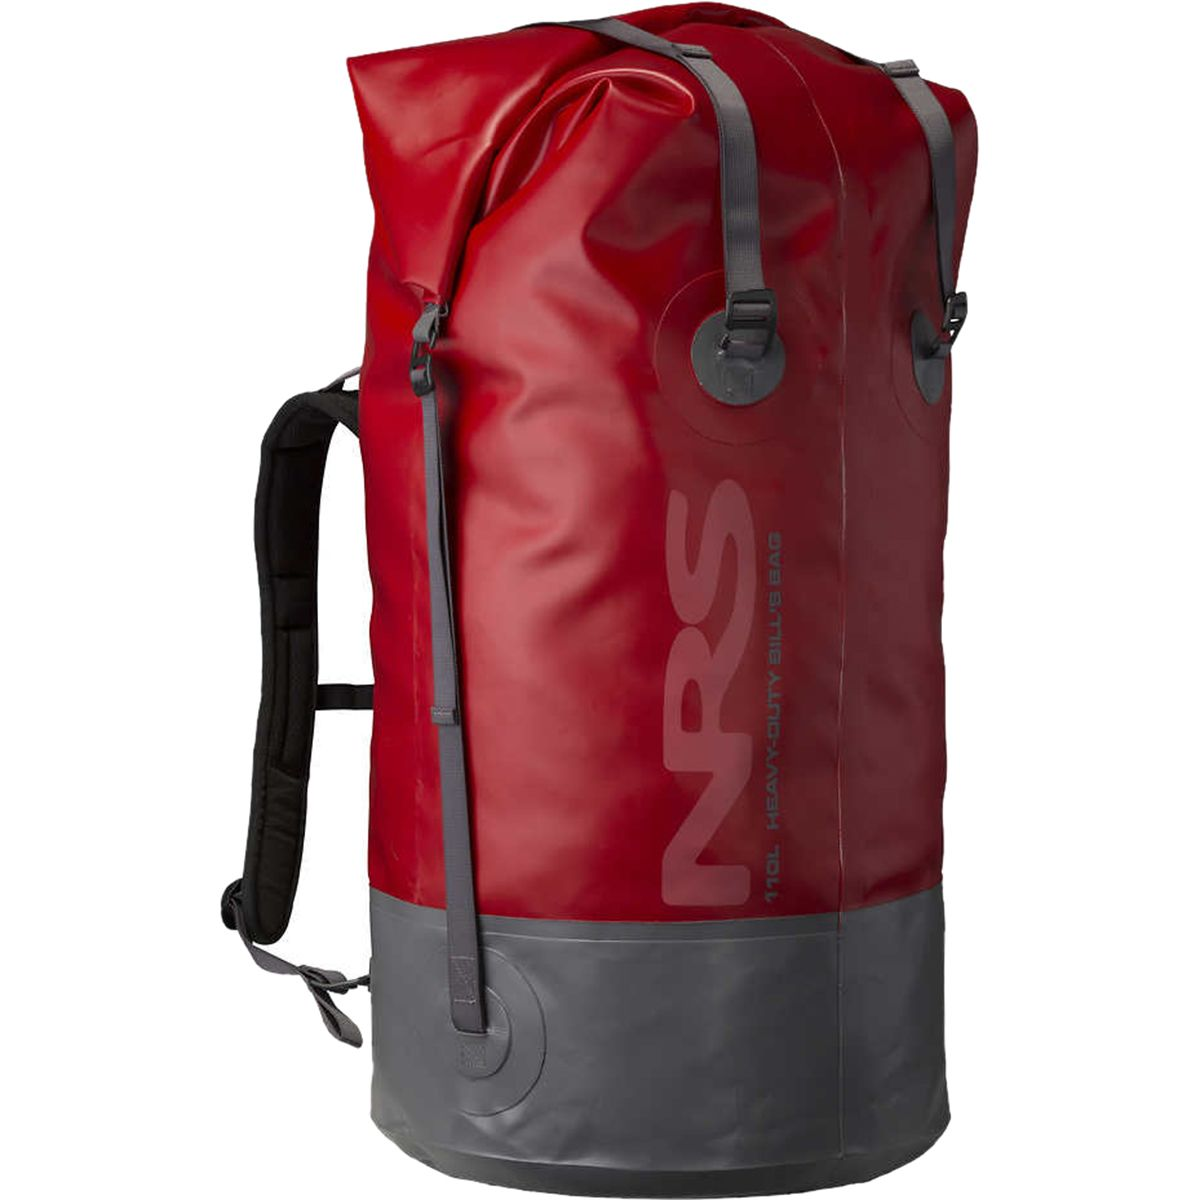 NRS Heavy-Duty Bill's Bag